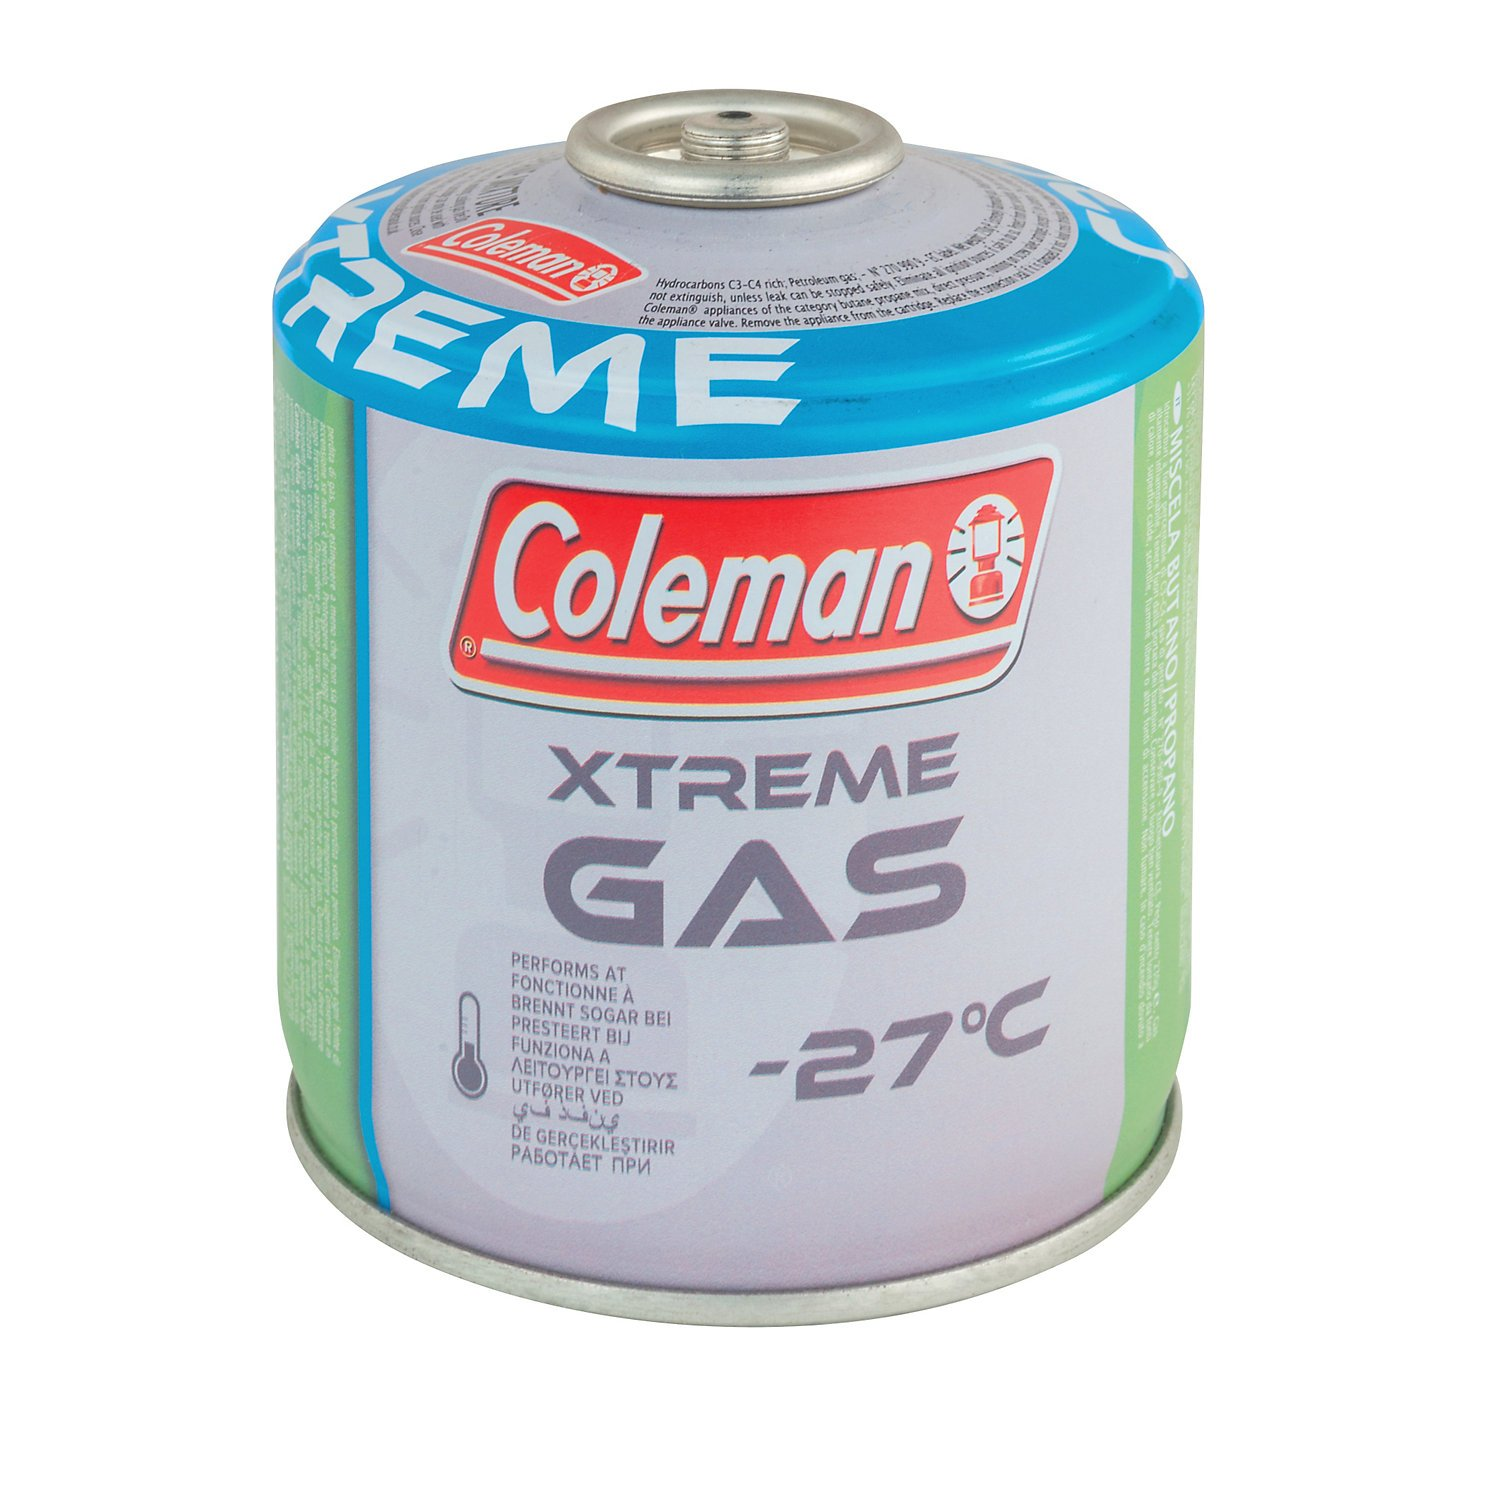 Coleman C300 Extreme Gas Cartridge 3000004537